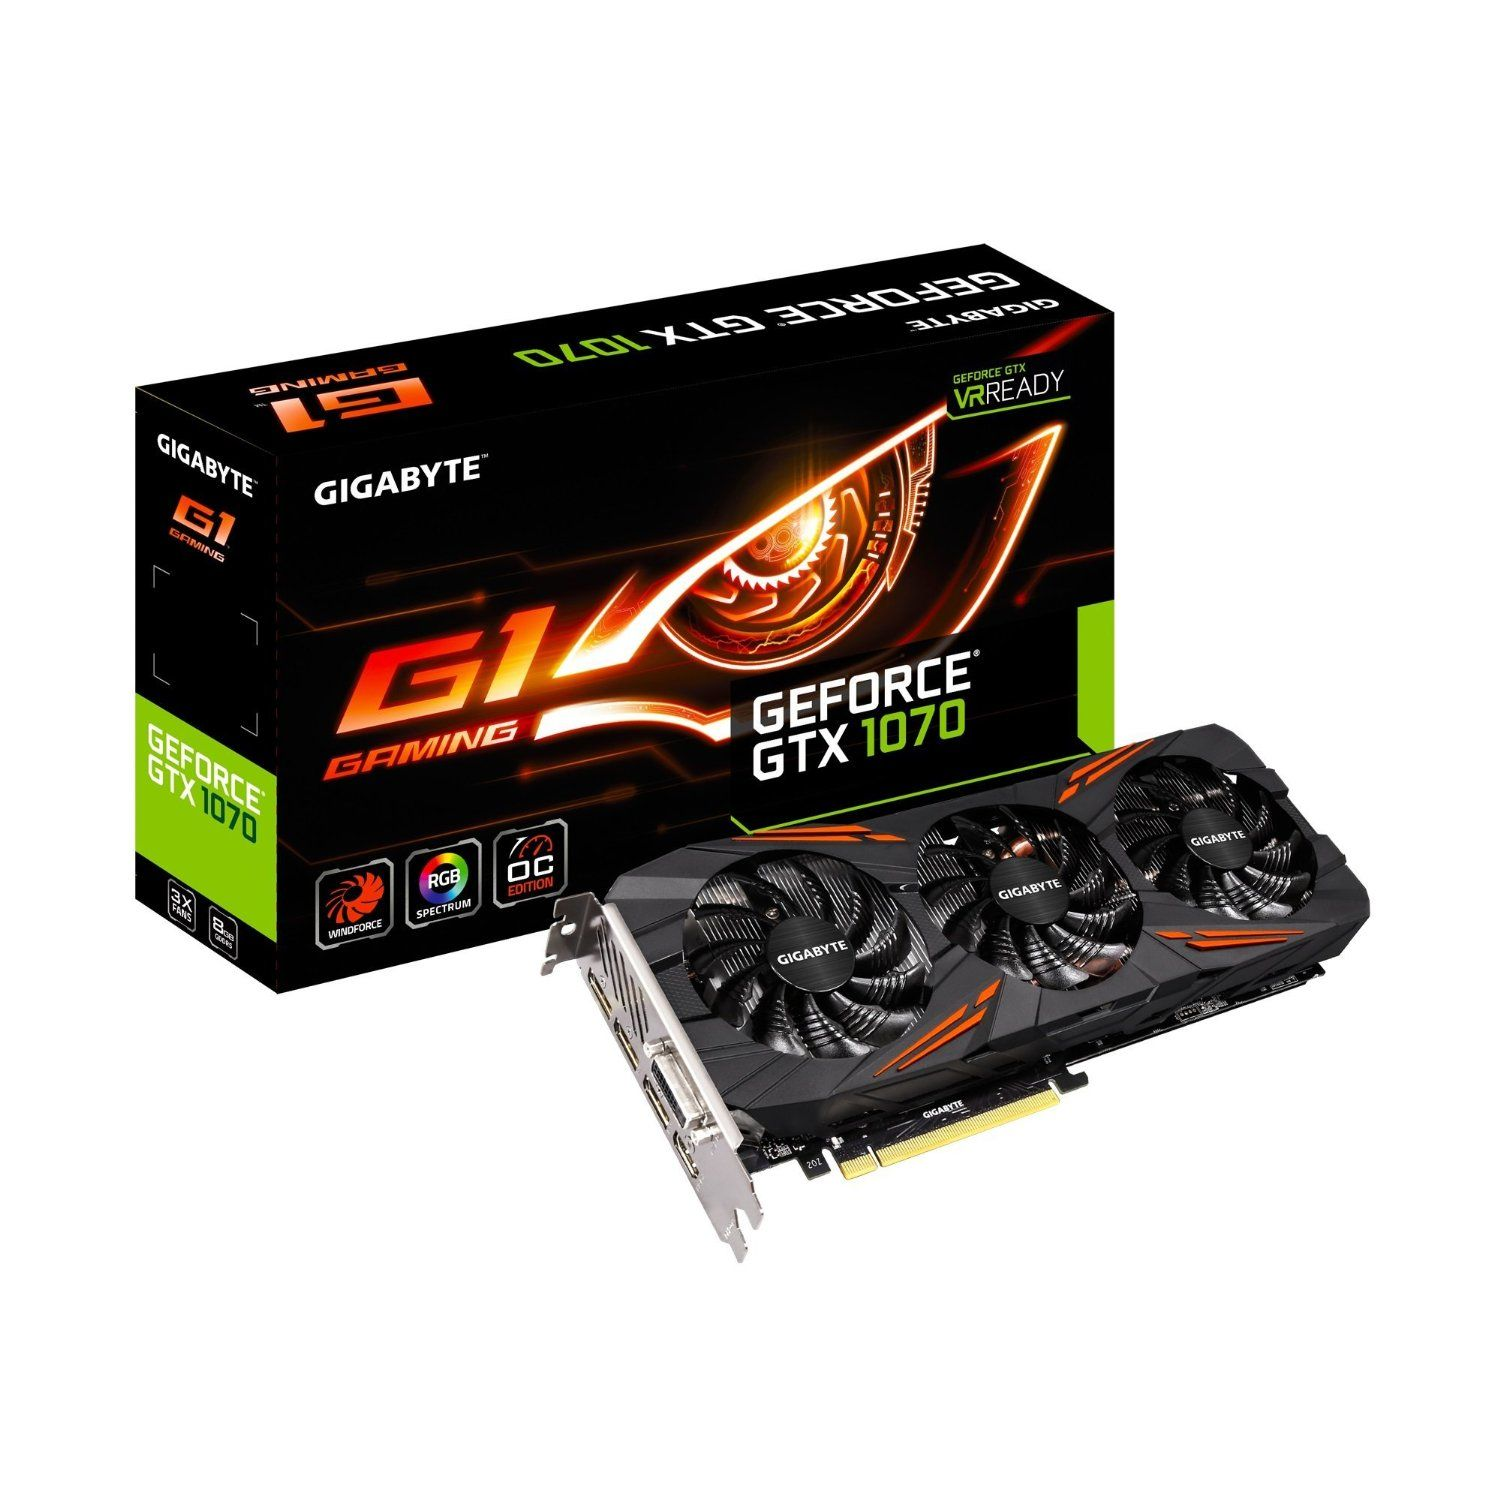 Gigabyte Geforce Gtx 1070 G1 Gaming Video Graphics Cards Gv